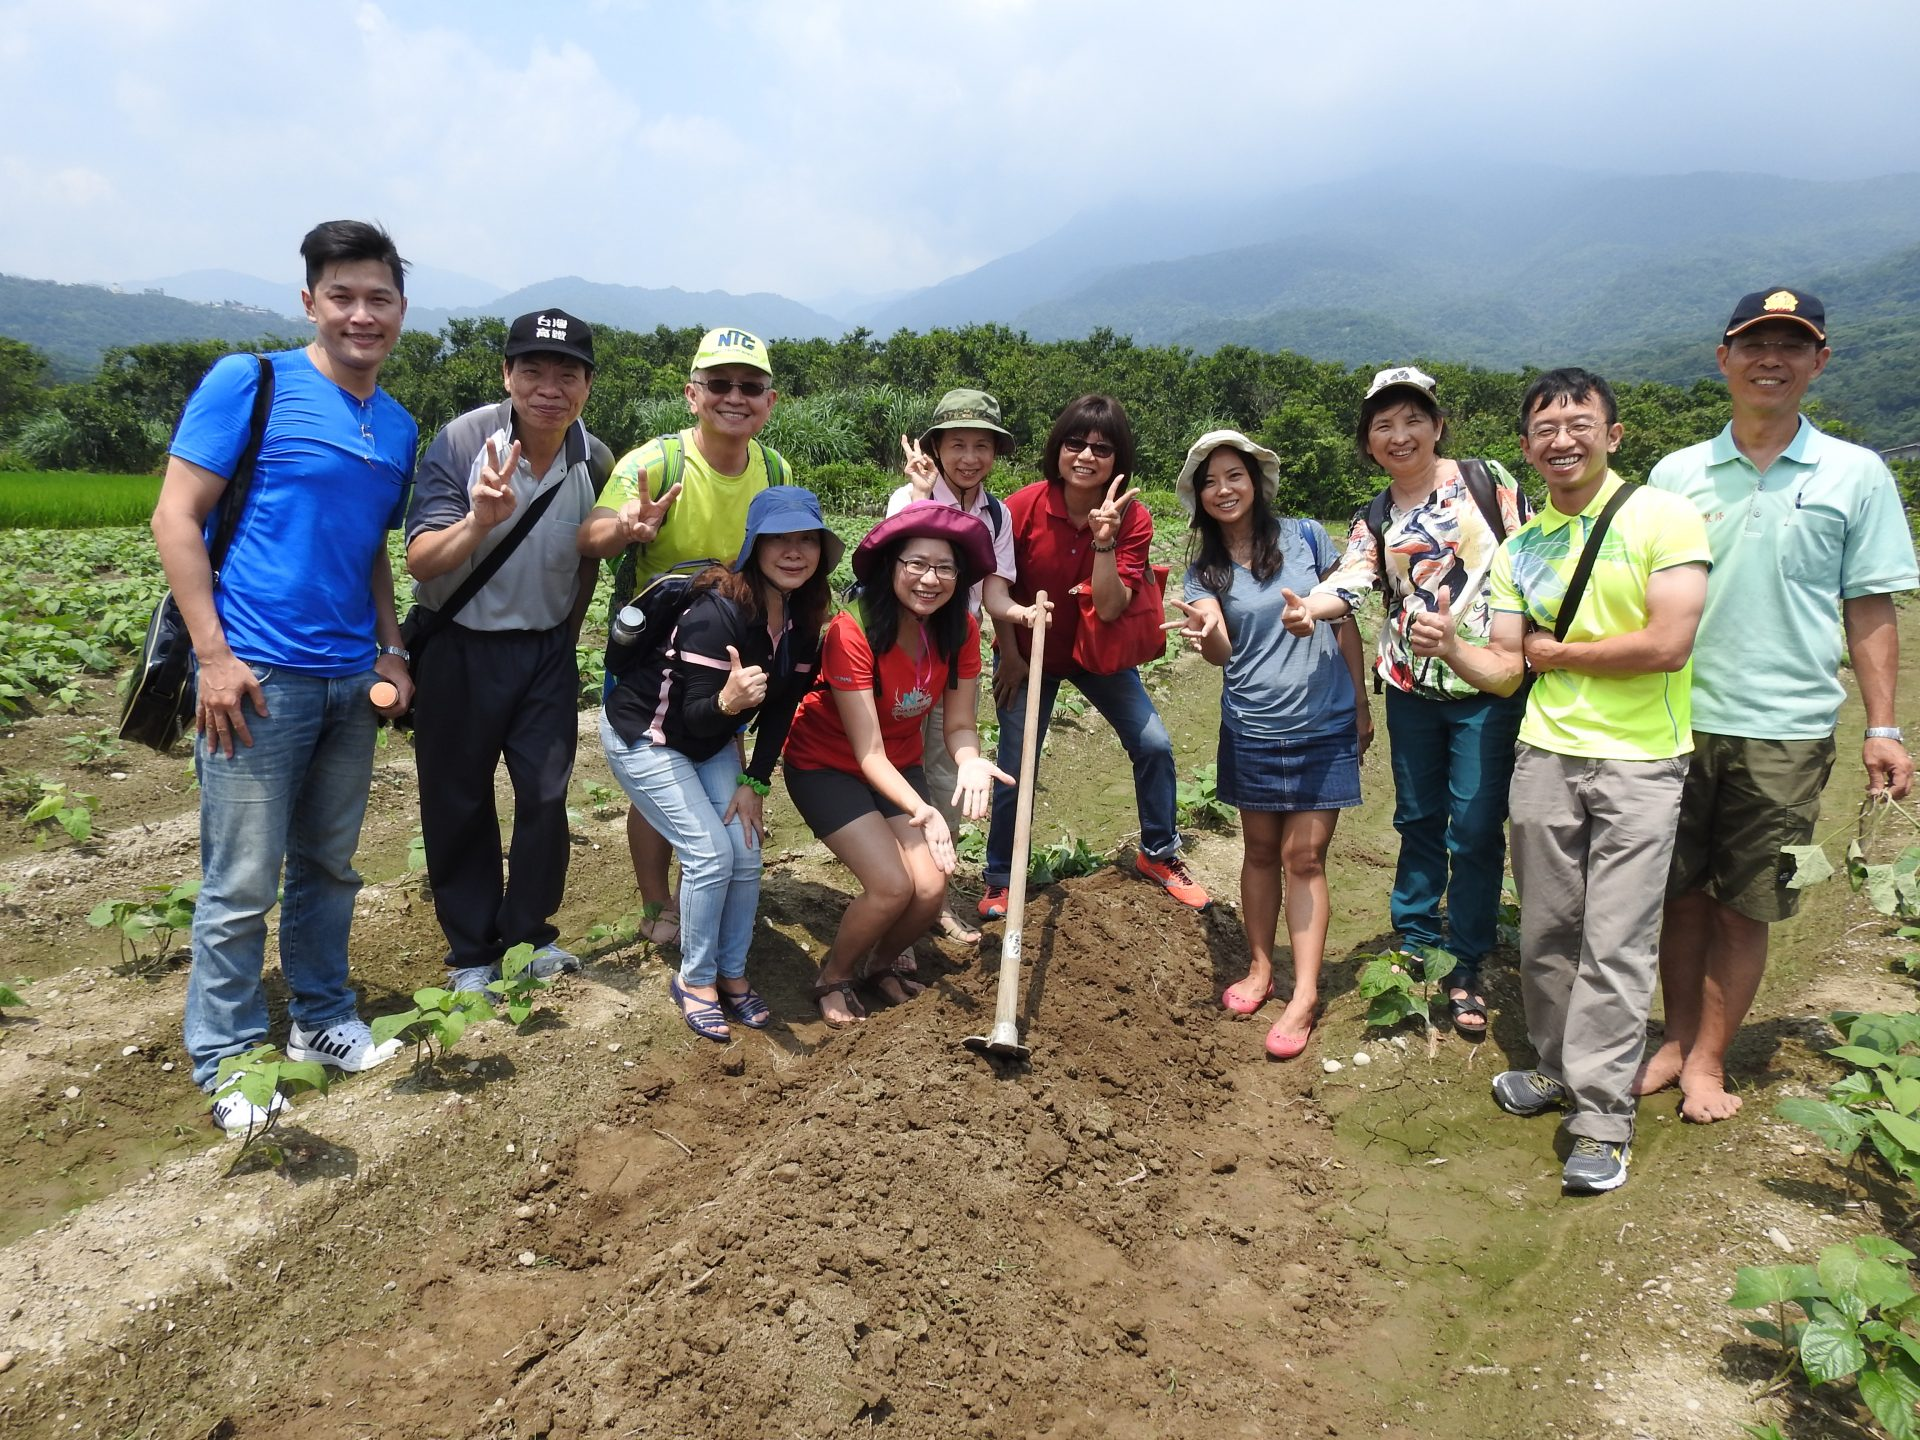 Participants are very happy throughout the Toastmasters outing at a field of sweet potatoes. (Image: Billy Shyu)